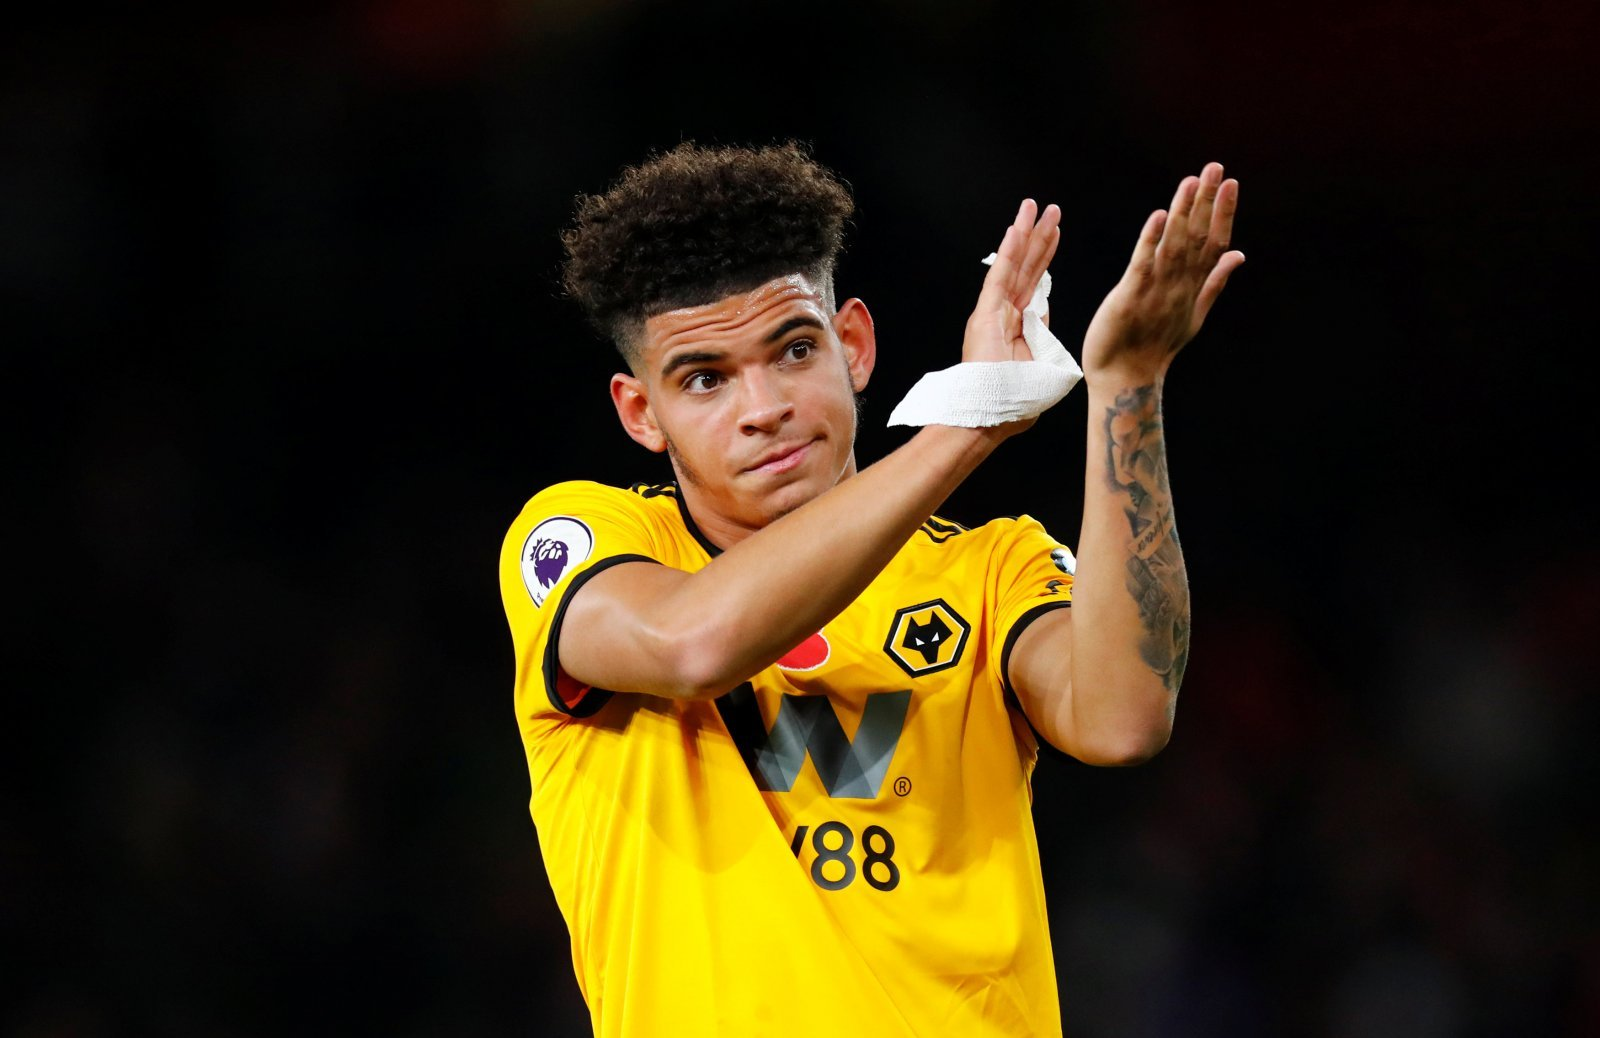 TT Introduces: Morgan Gibbs-White the next breakout England star